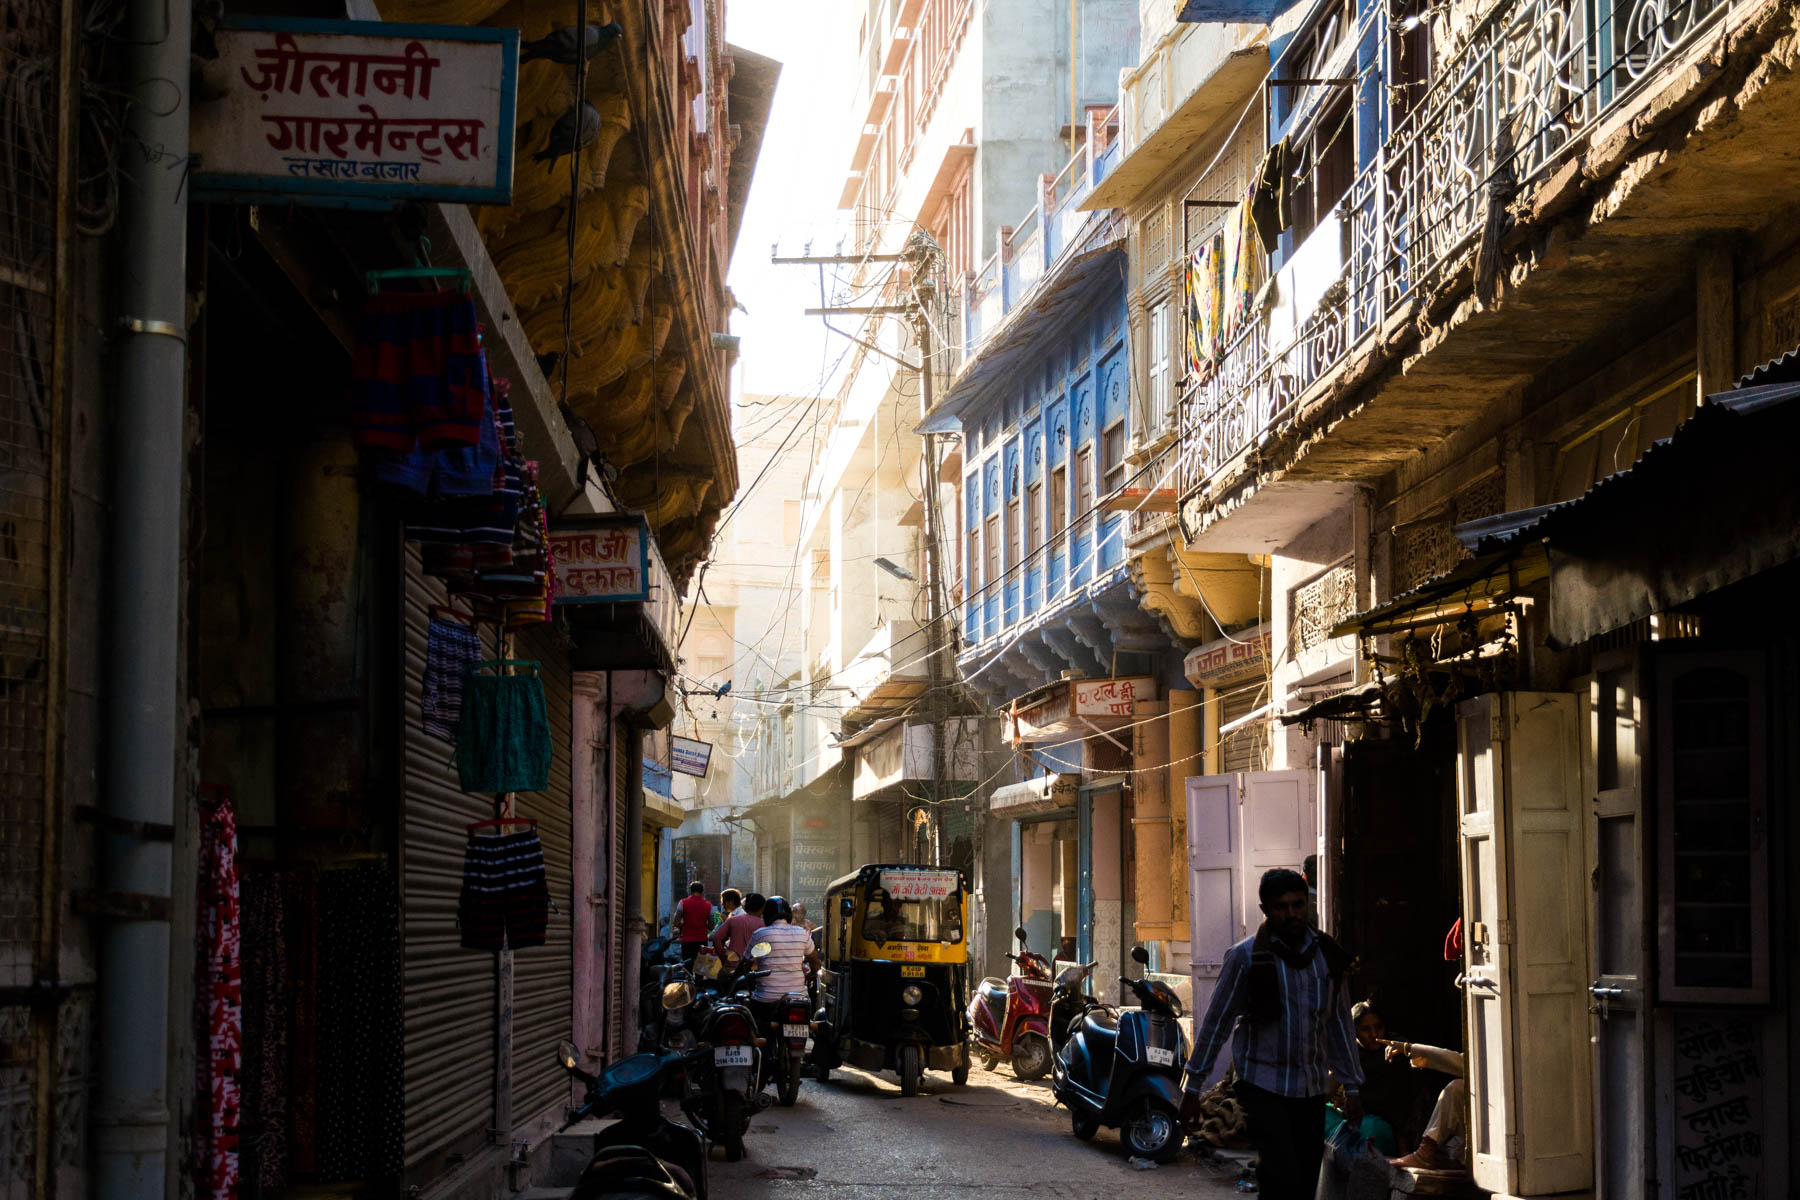 Golden hour in the alleys of Jodhpur